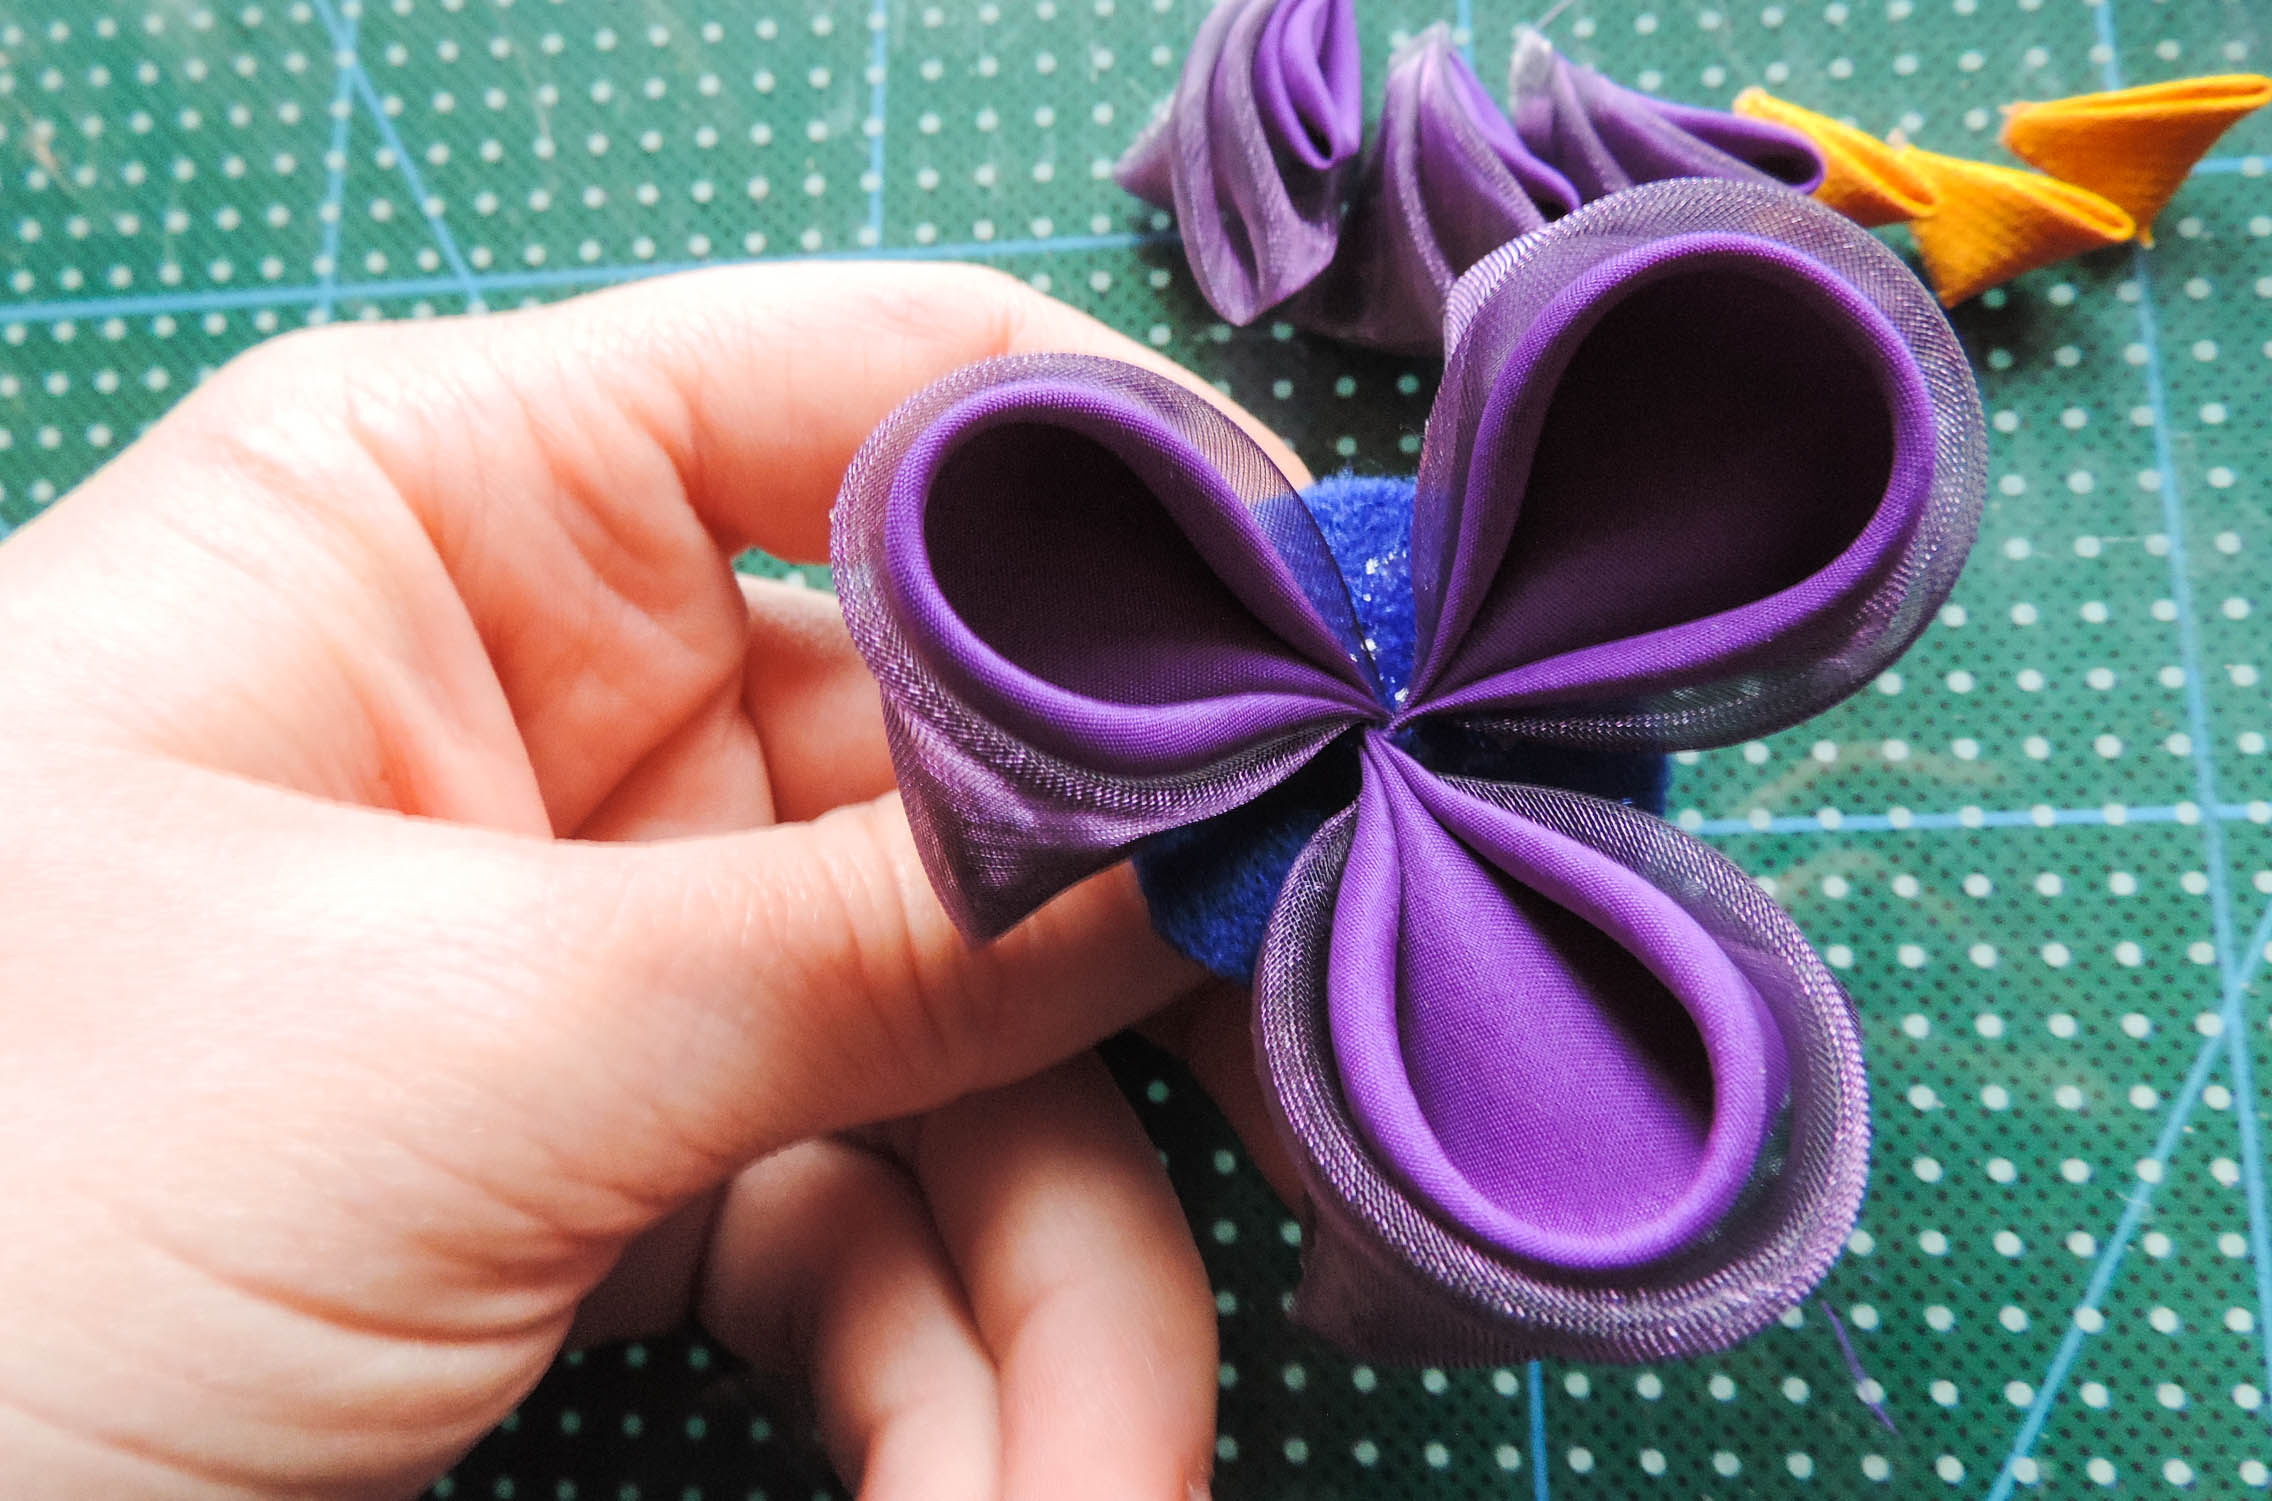 Iris flower tutorial - attaching the petals to the base 2